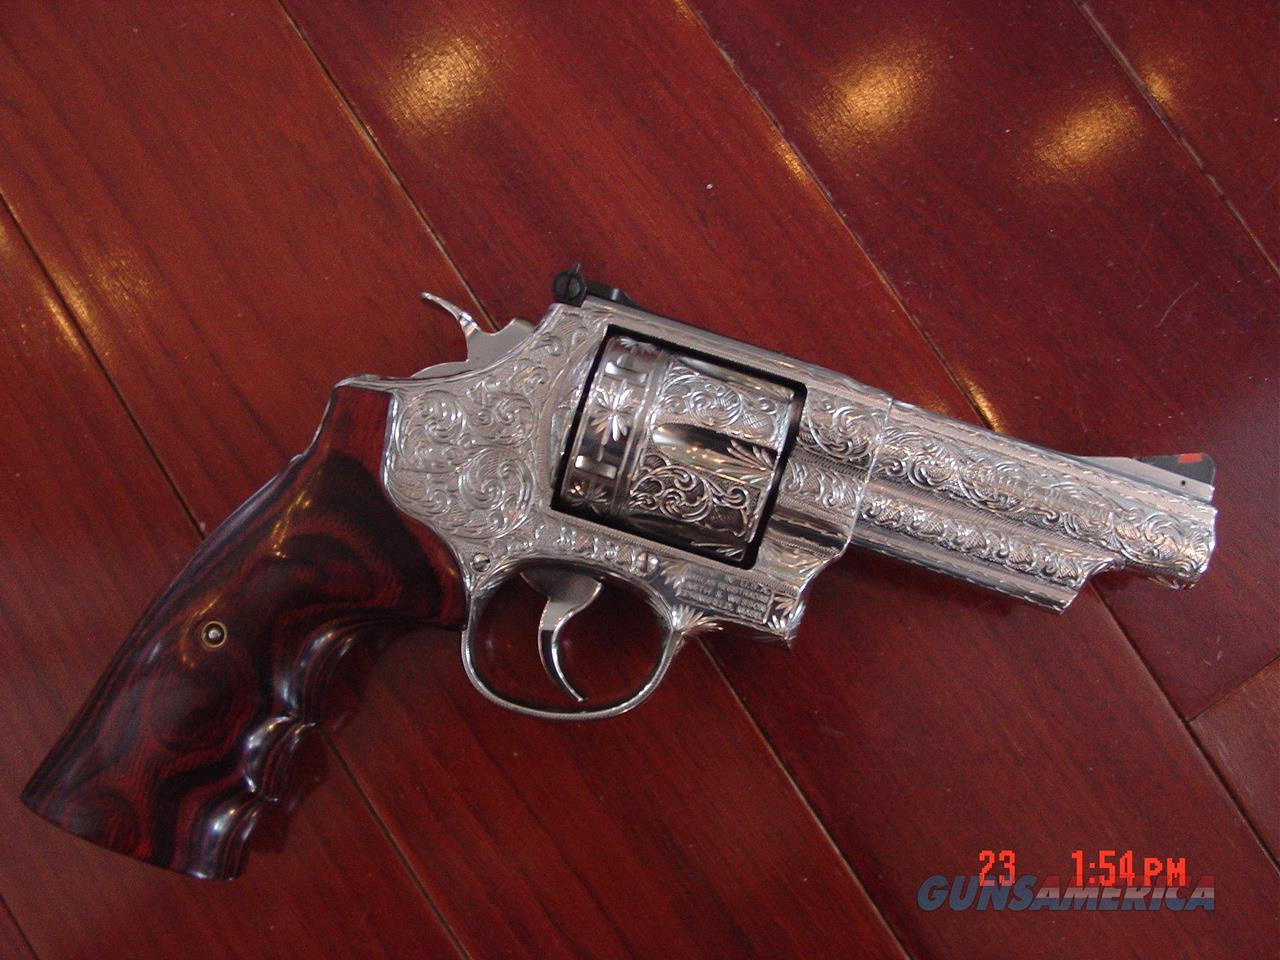 "Smith & Wesson 629-6,4"" 44 mag,fully deep hand engraved & polished by Flannery Engraving,Rosewood grips,all papers,awesome 1 of a kind masterpiece-nicer in person.  Guns > Pistols > Smith & Wesson Revolvers > Model 629"